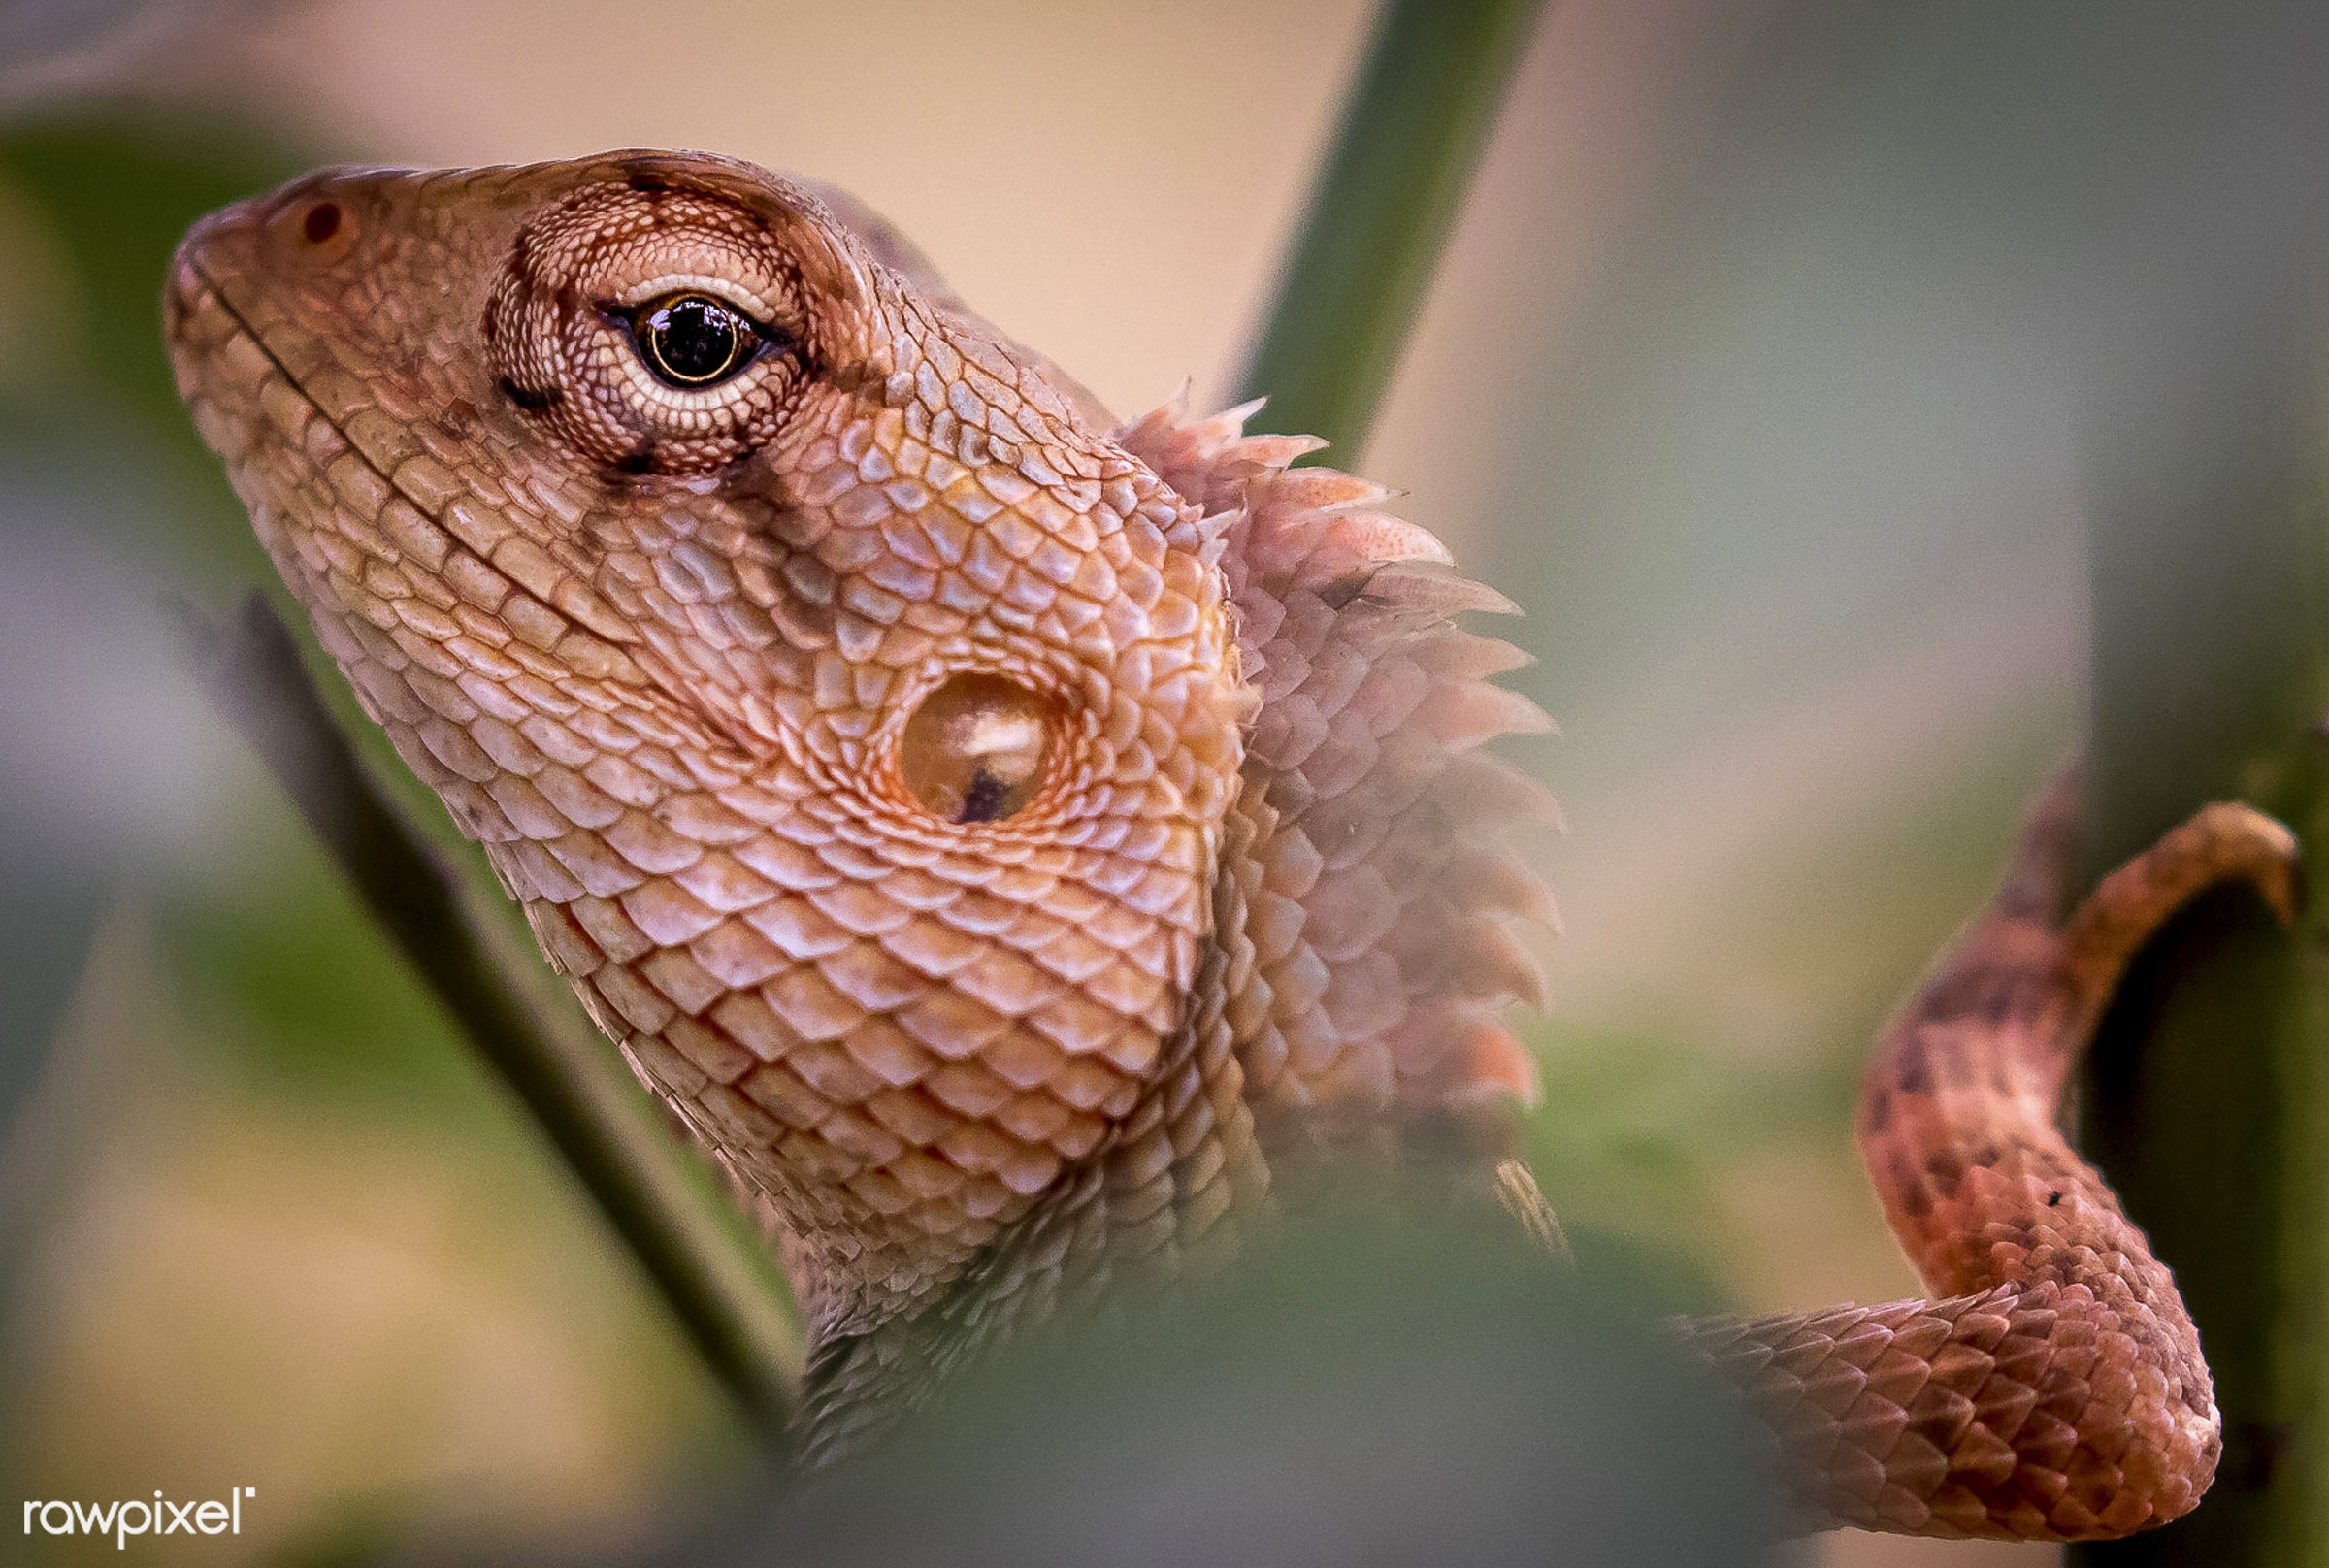 Closeup of an Iguana - lizard, pet, america, american, animal, close up, closeup, cold blood, iguana, natural, nature,...